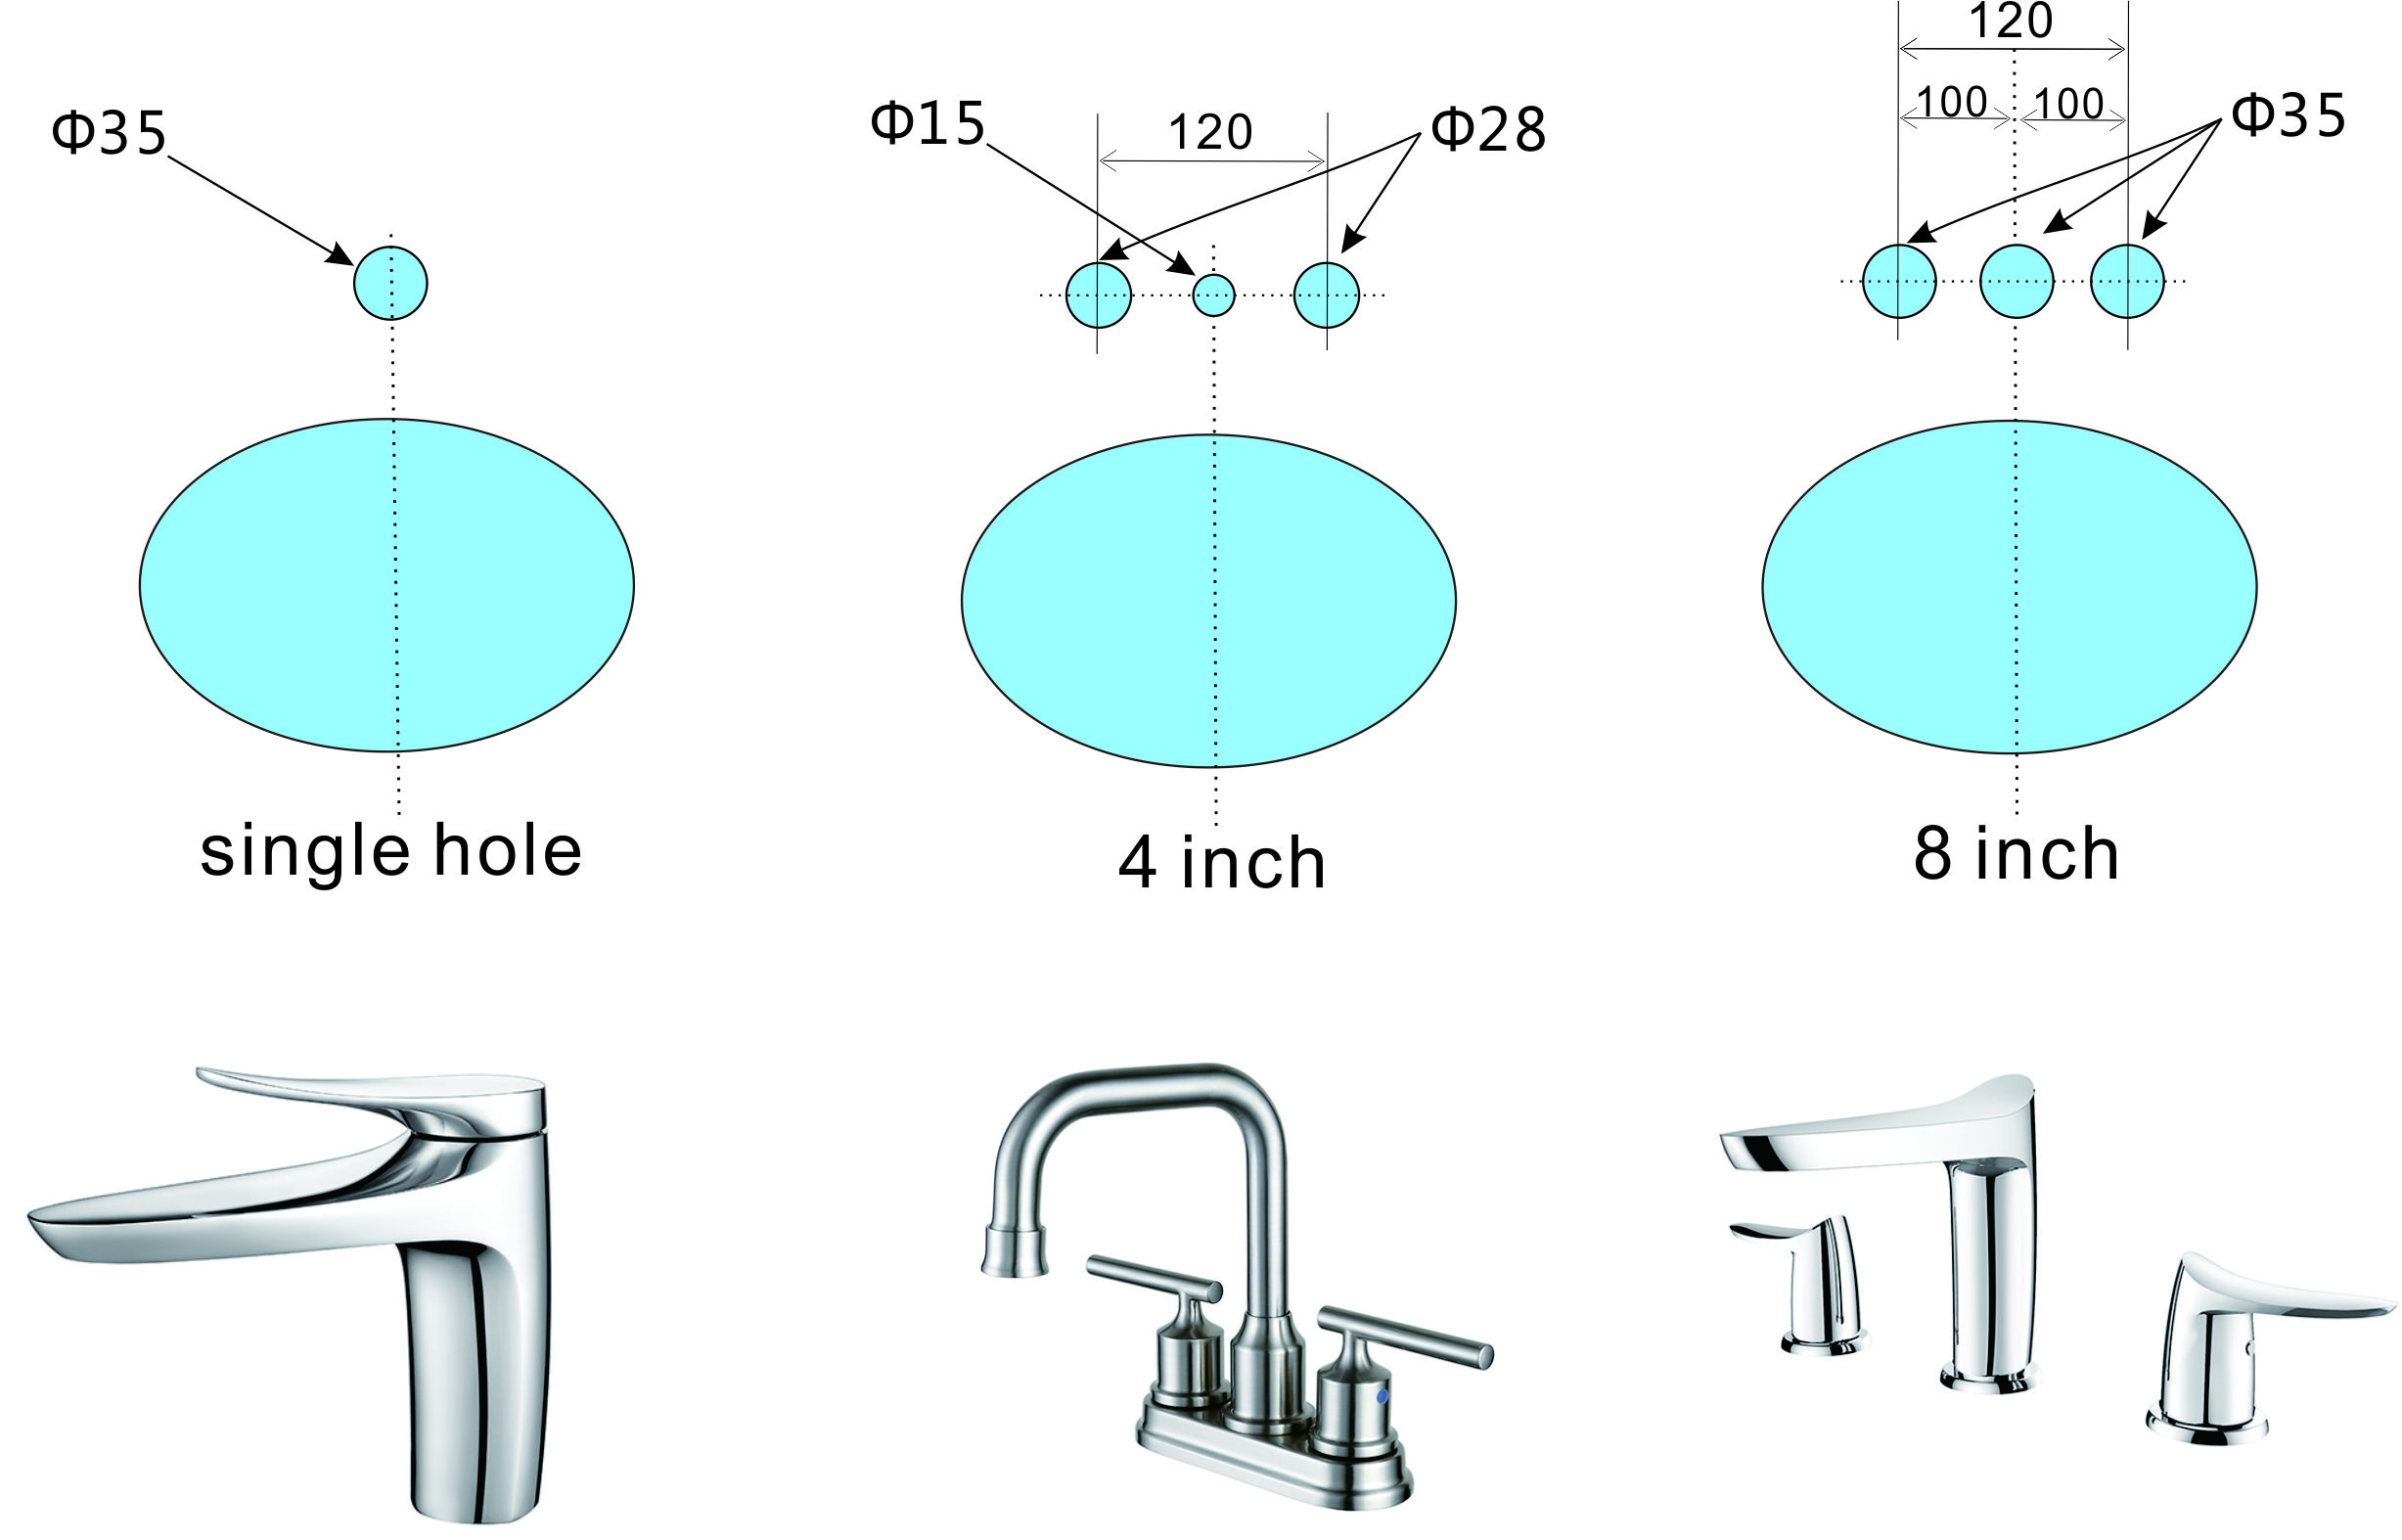 What Is The Widespread Faucet For Home?